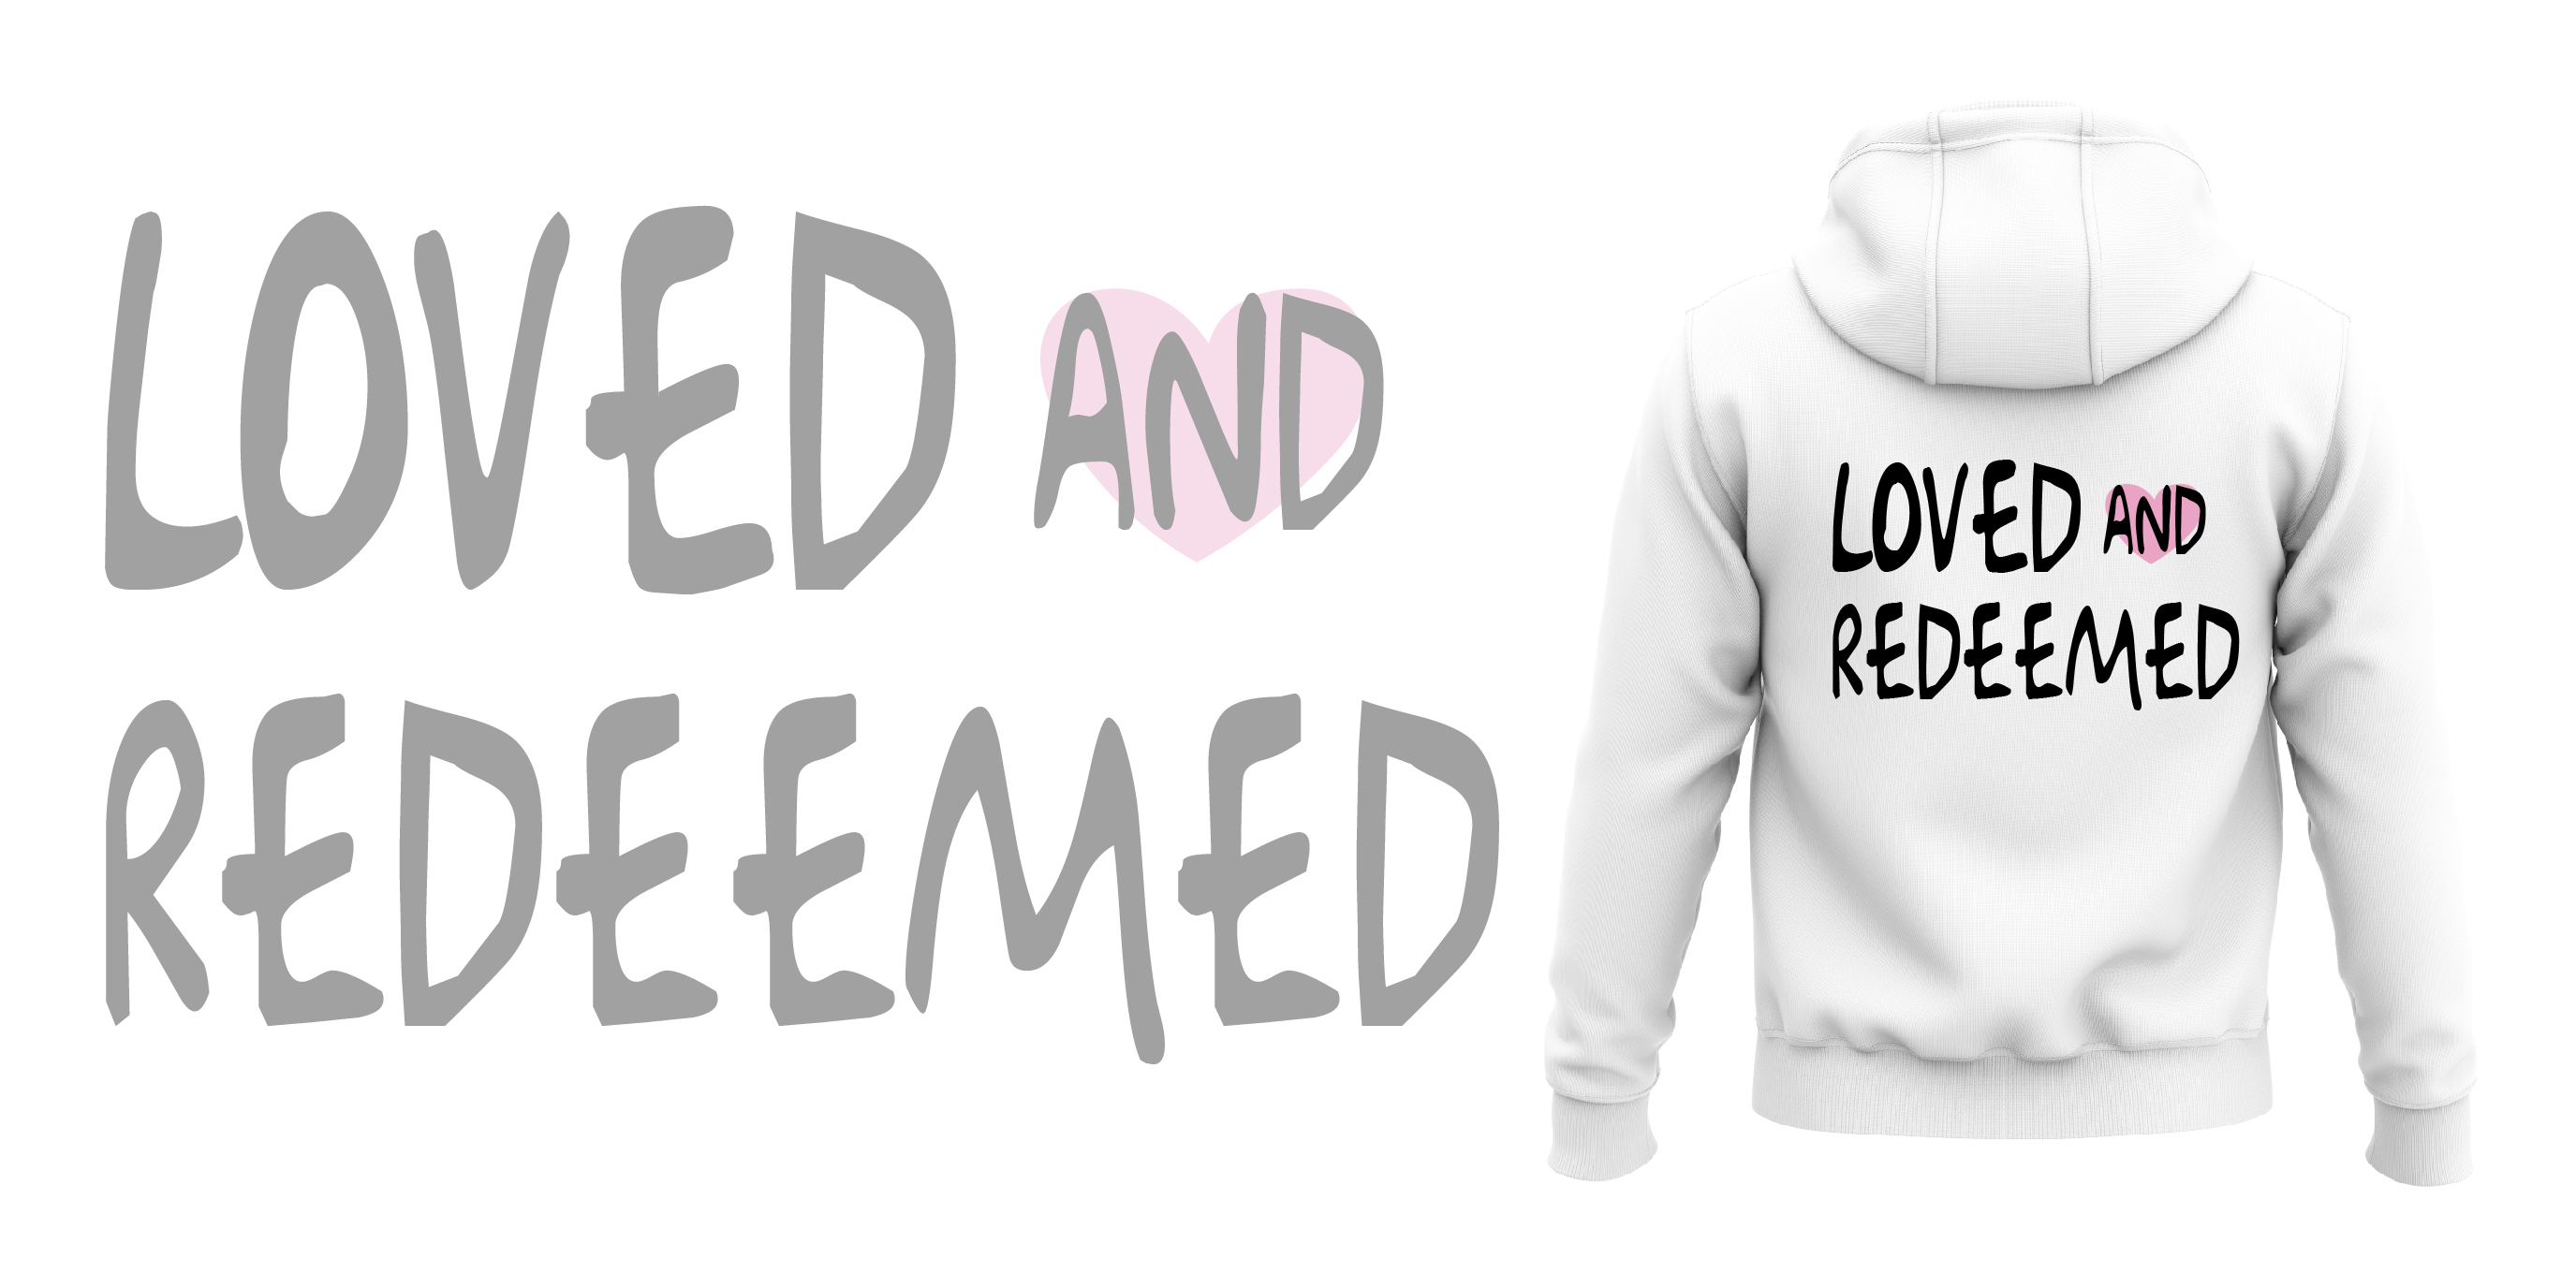 loved and redeemed 01